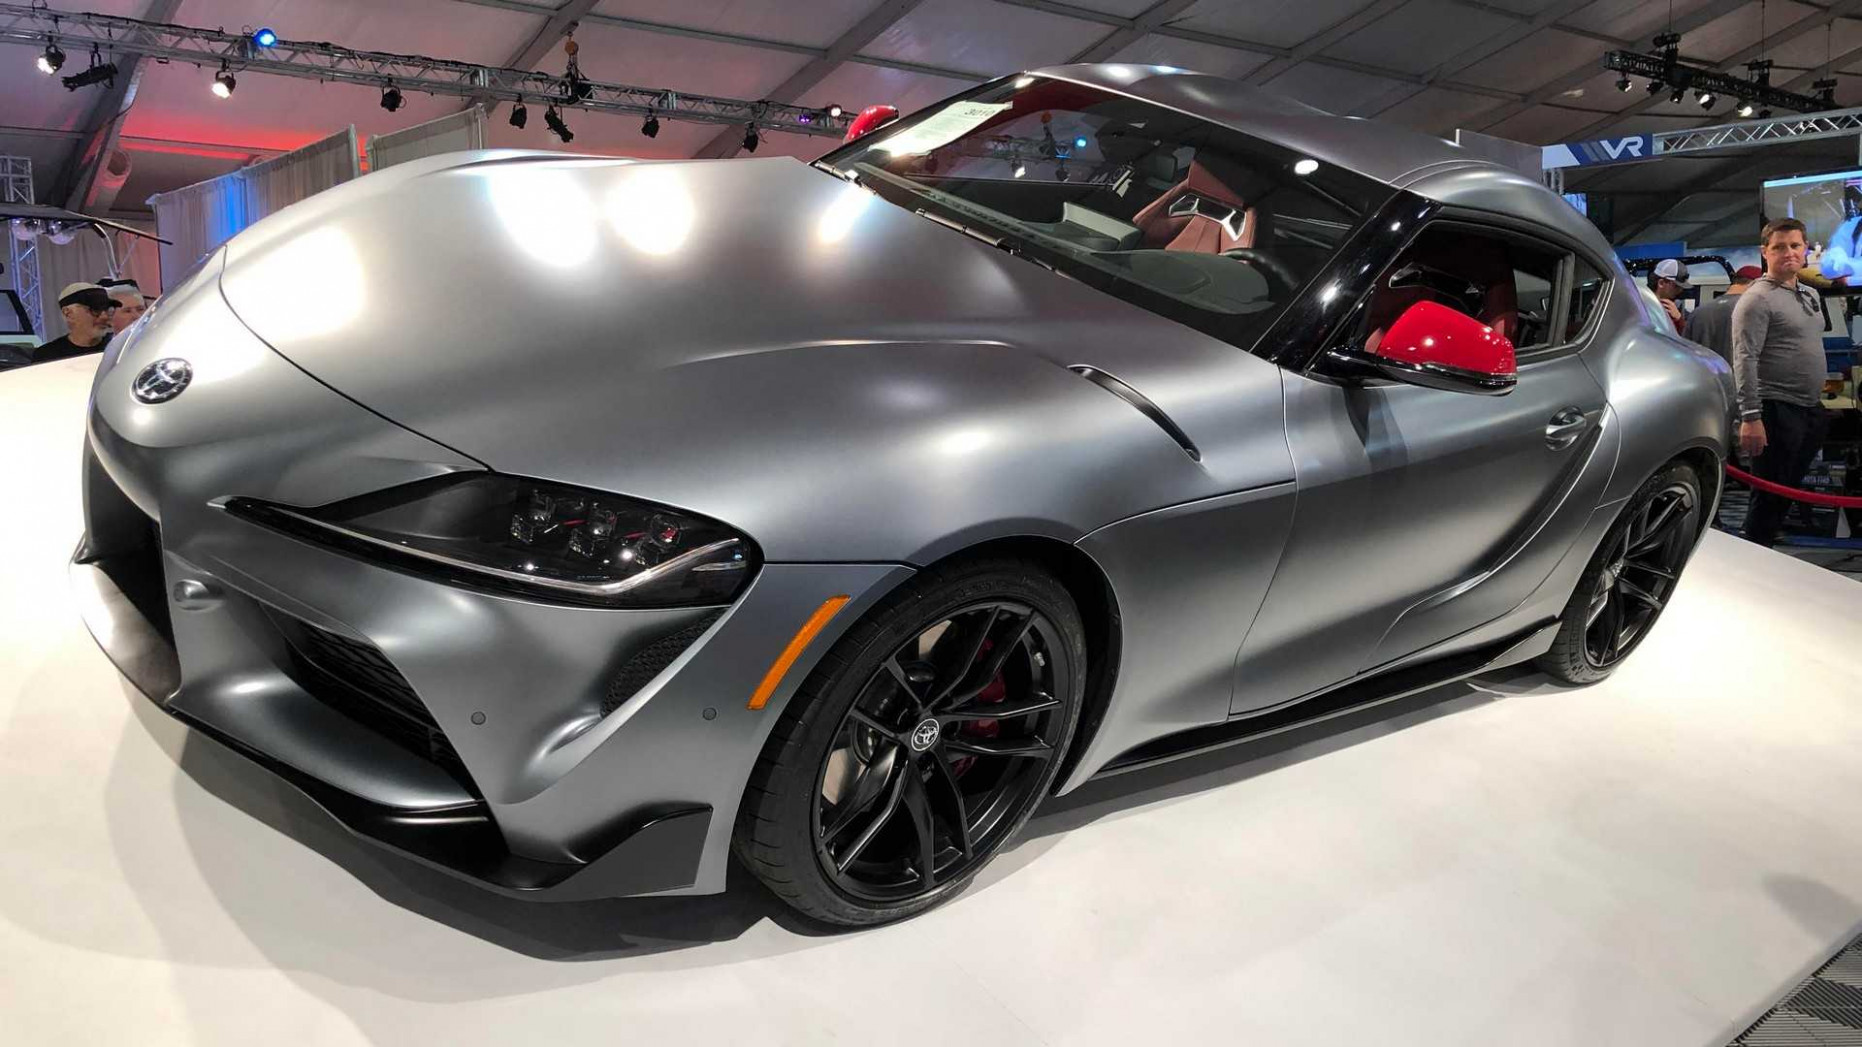 First Production 7 Toyota Supra Sold For $7.7M At Auction